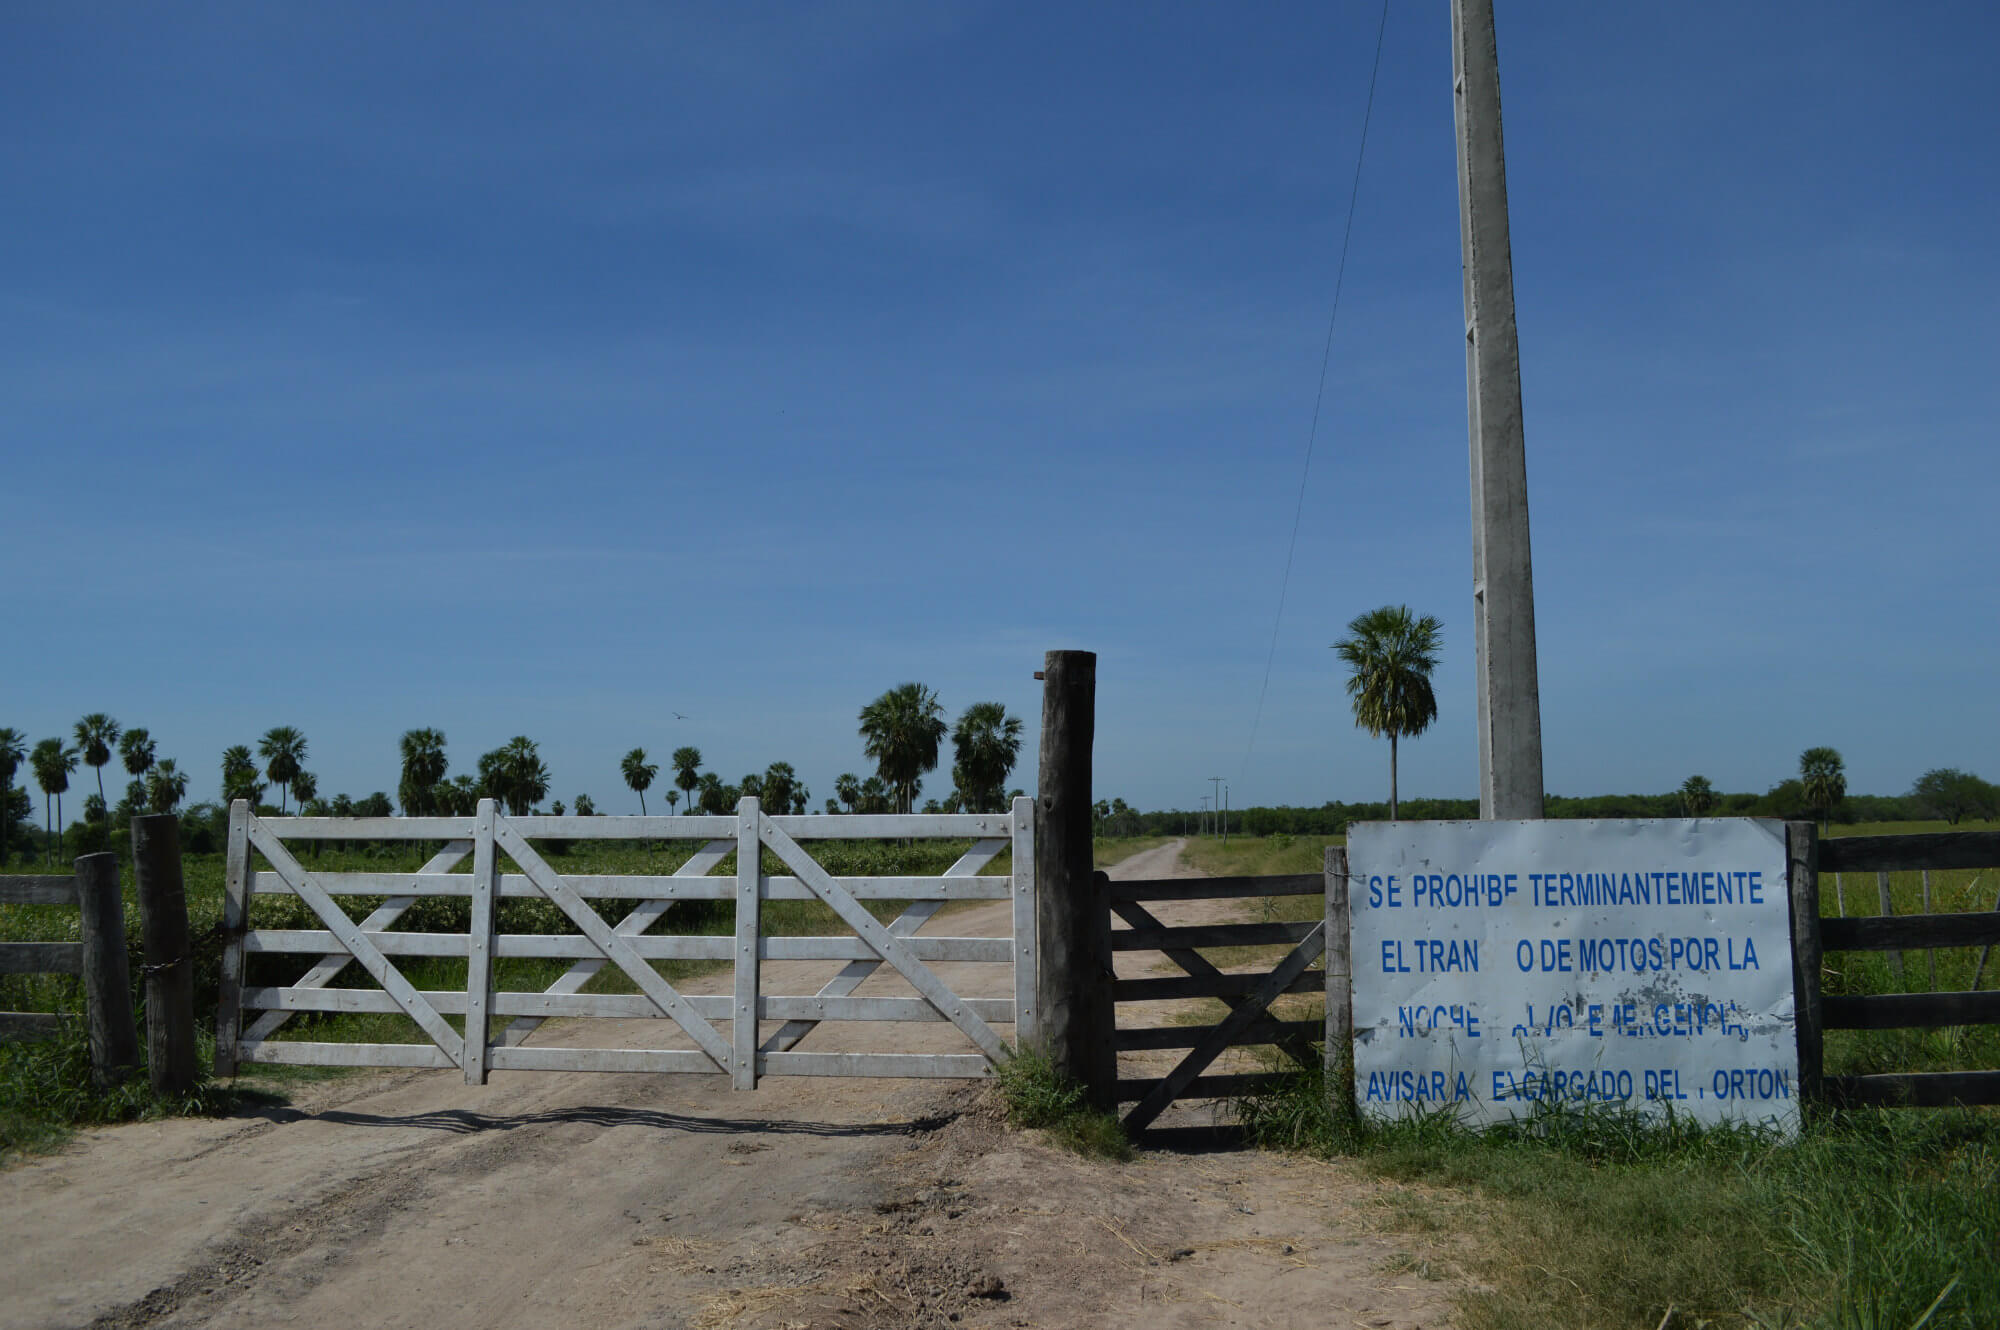 The beginning of the 80km road through cattle ranch estates leading to Yexwase Yet. The sign says 'travel on the road after dark is prohibited'. (Photo credit: Fionuala Cregan)